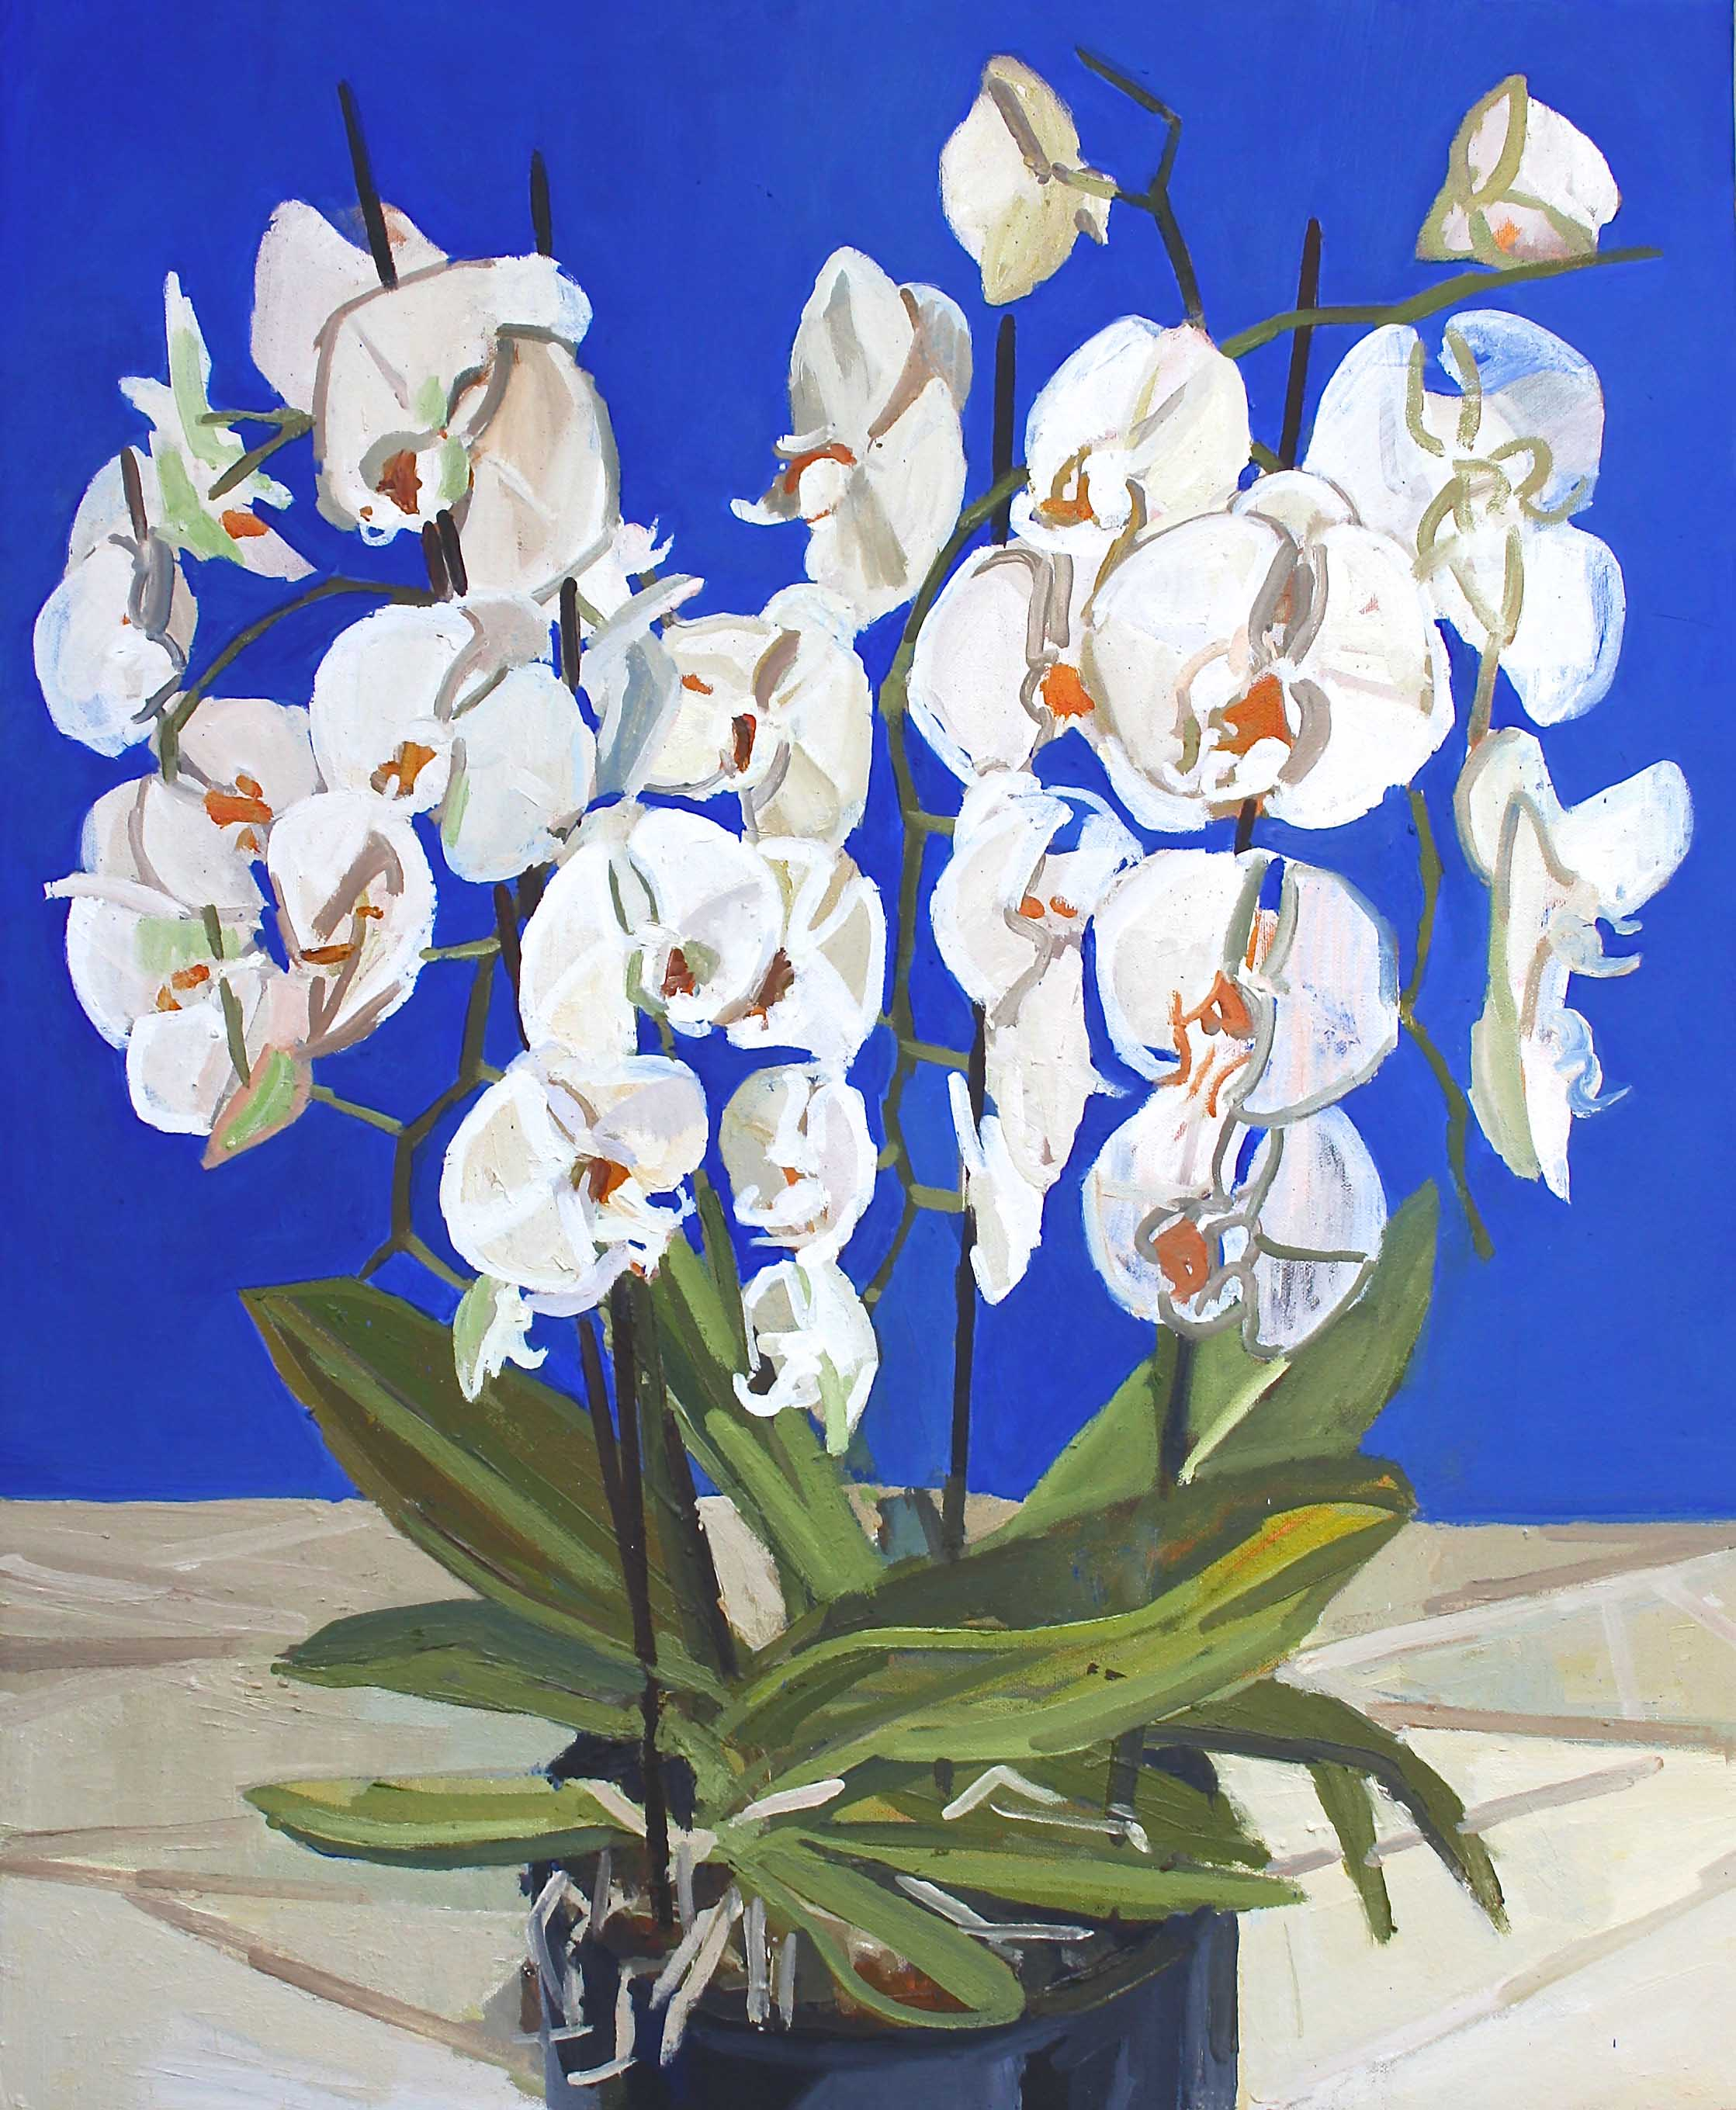 73 x 60 cm White Orchid, Oil on Canvas